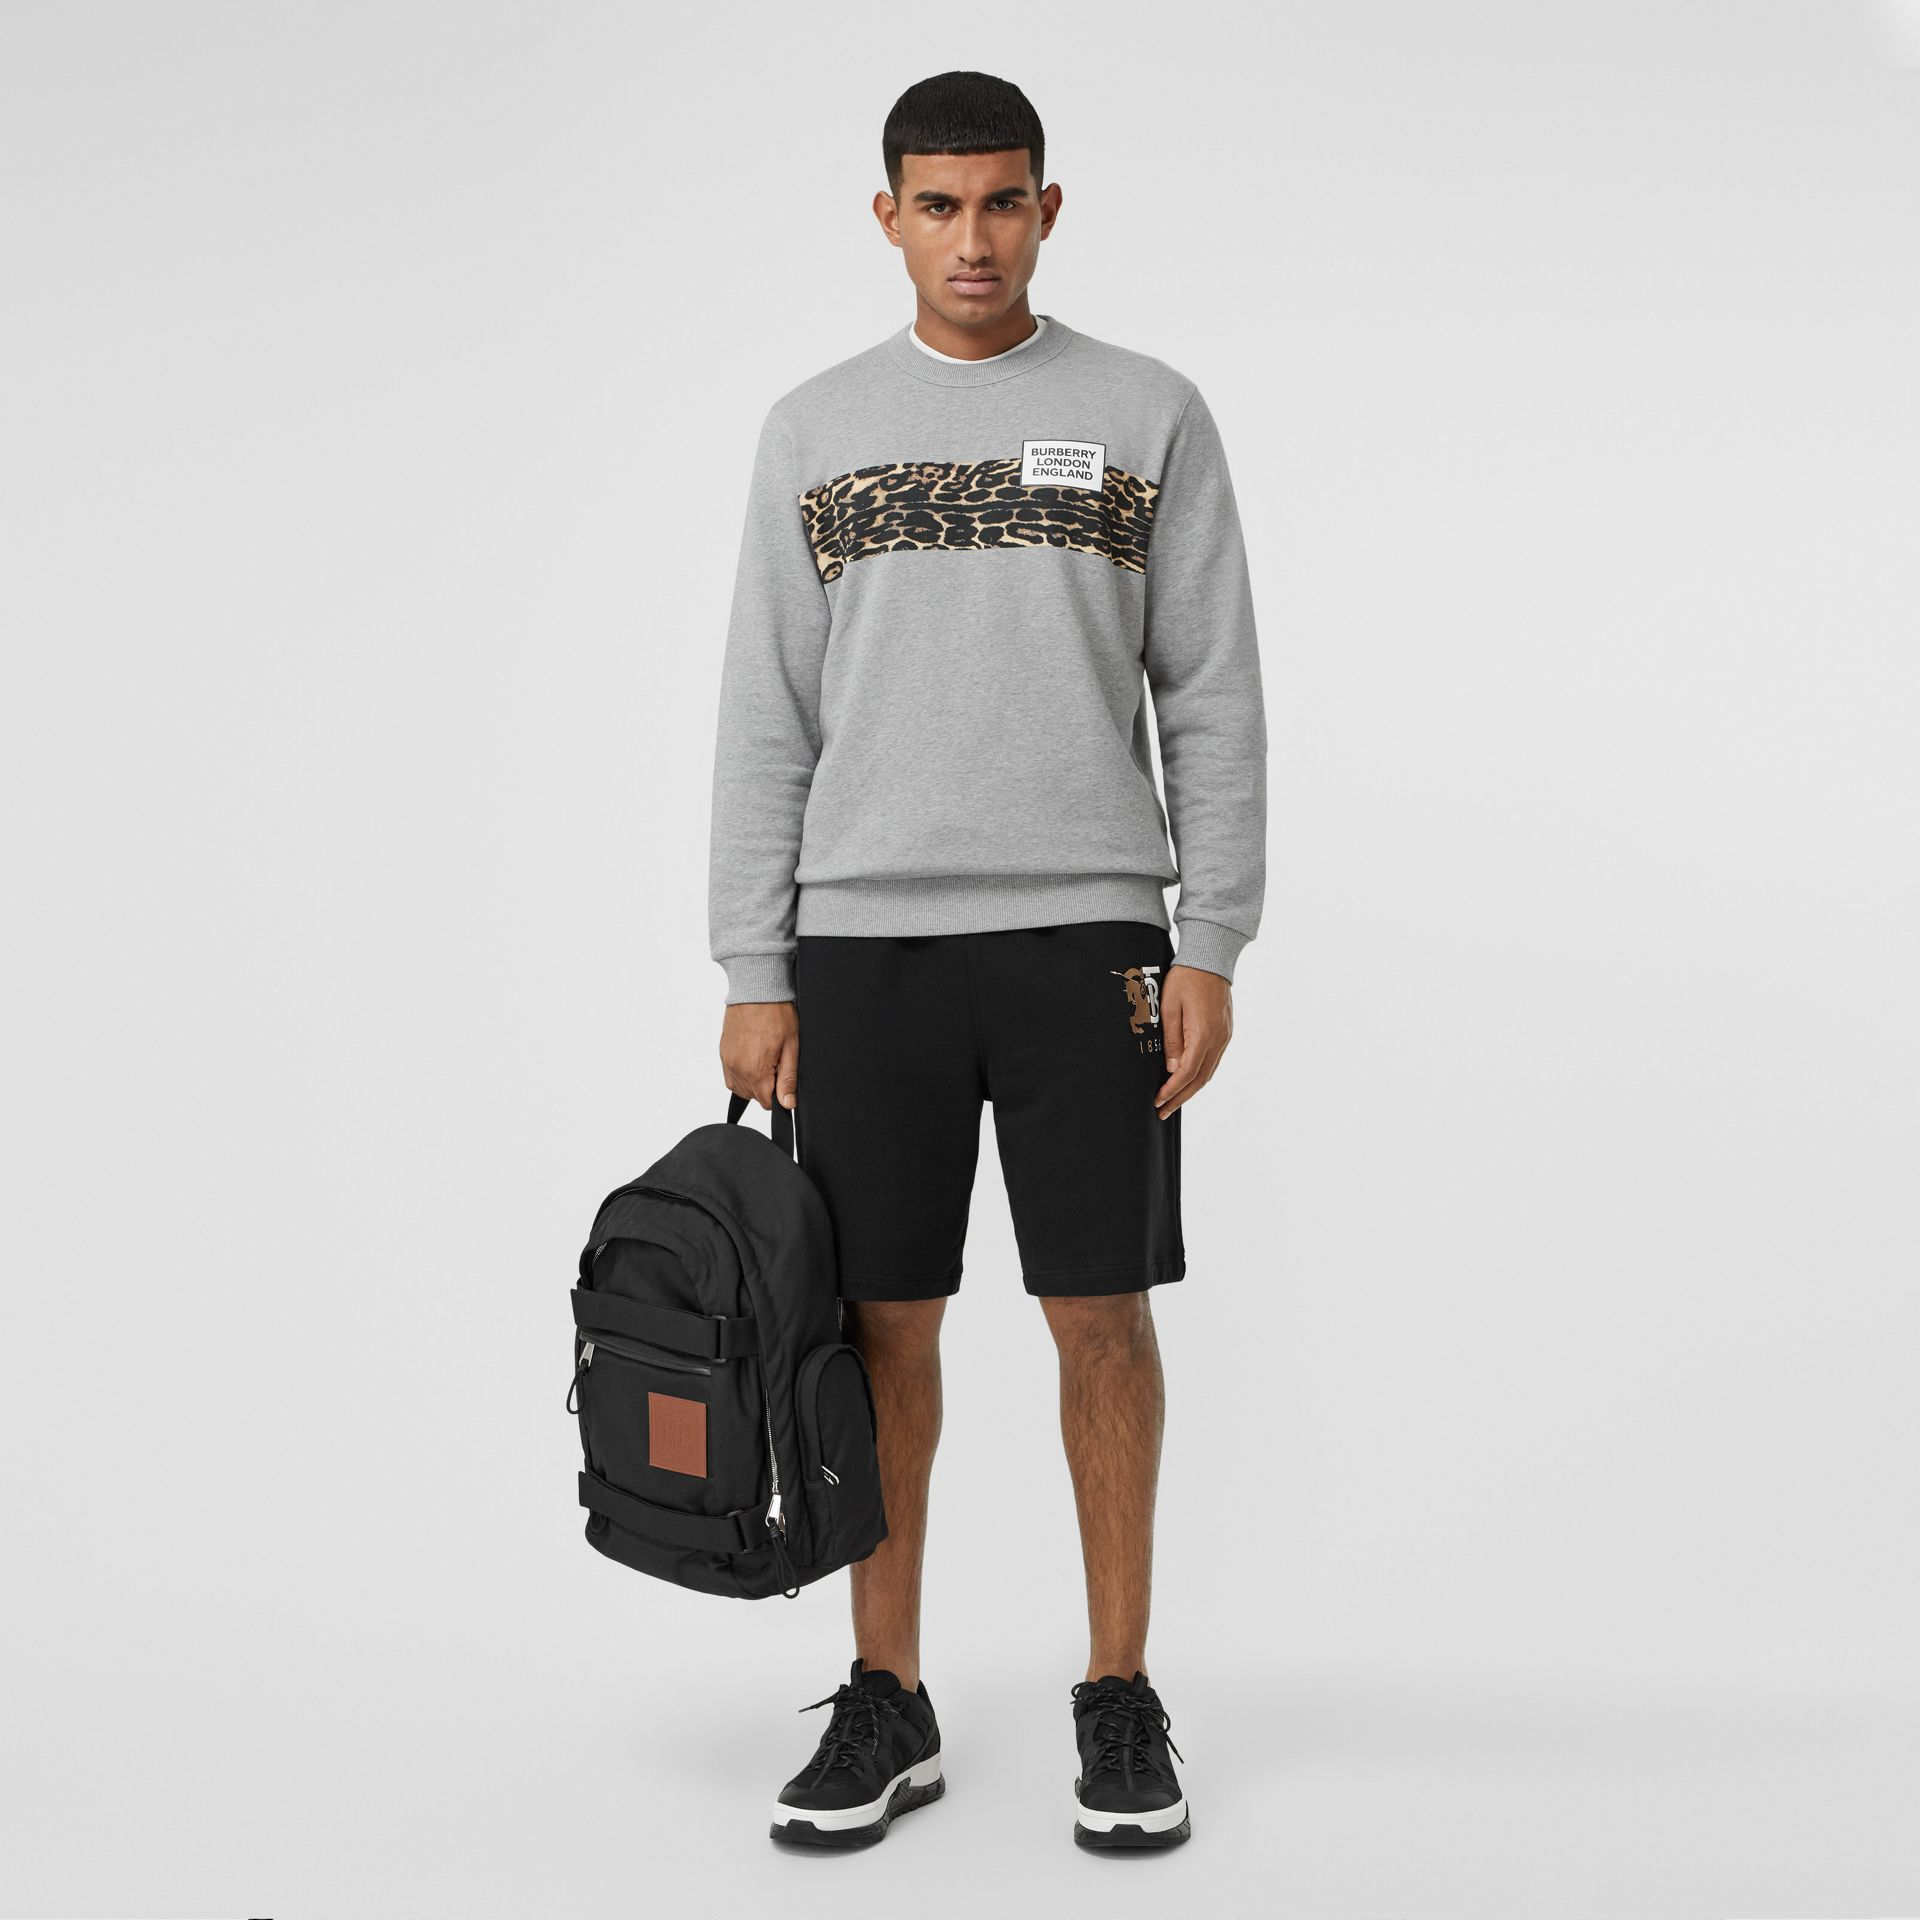 Montage Print Cotton Sweatshirt in Pale Grey Melange - Men | Burberry - gallery image 4